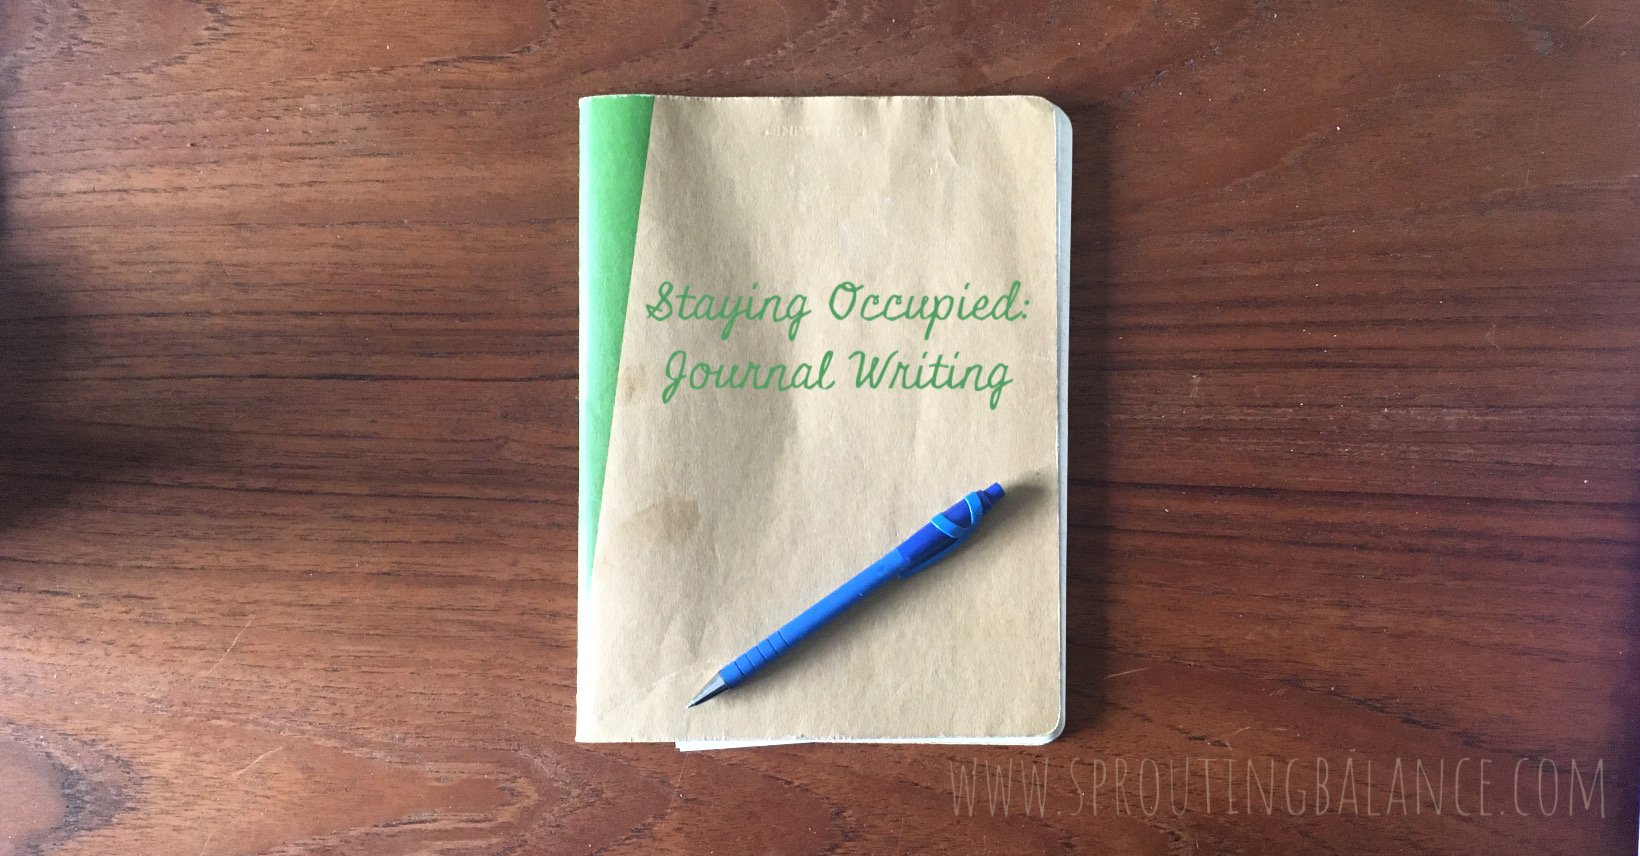 Staying Occupied: Journal Writing | www.sproutingbalance.com | #stayhome #socialdistancing #bepositive